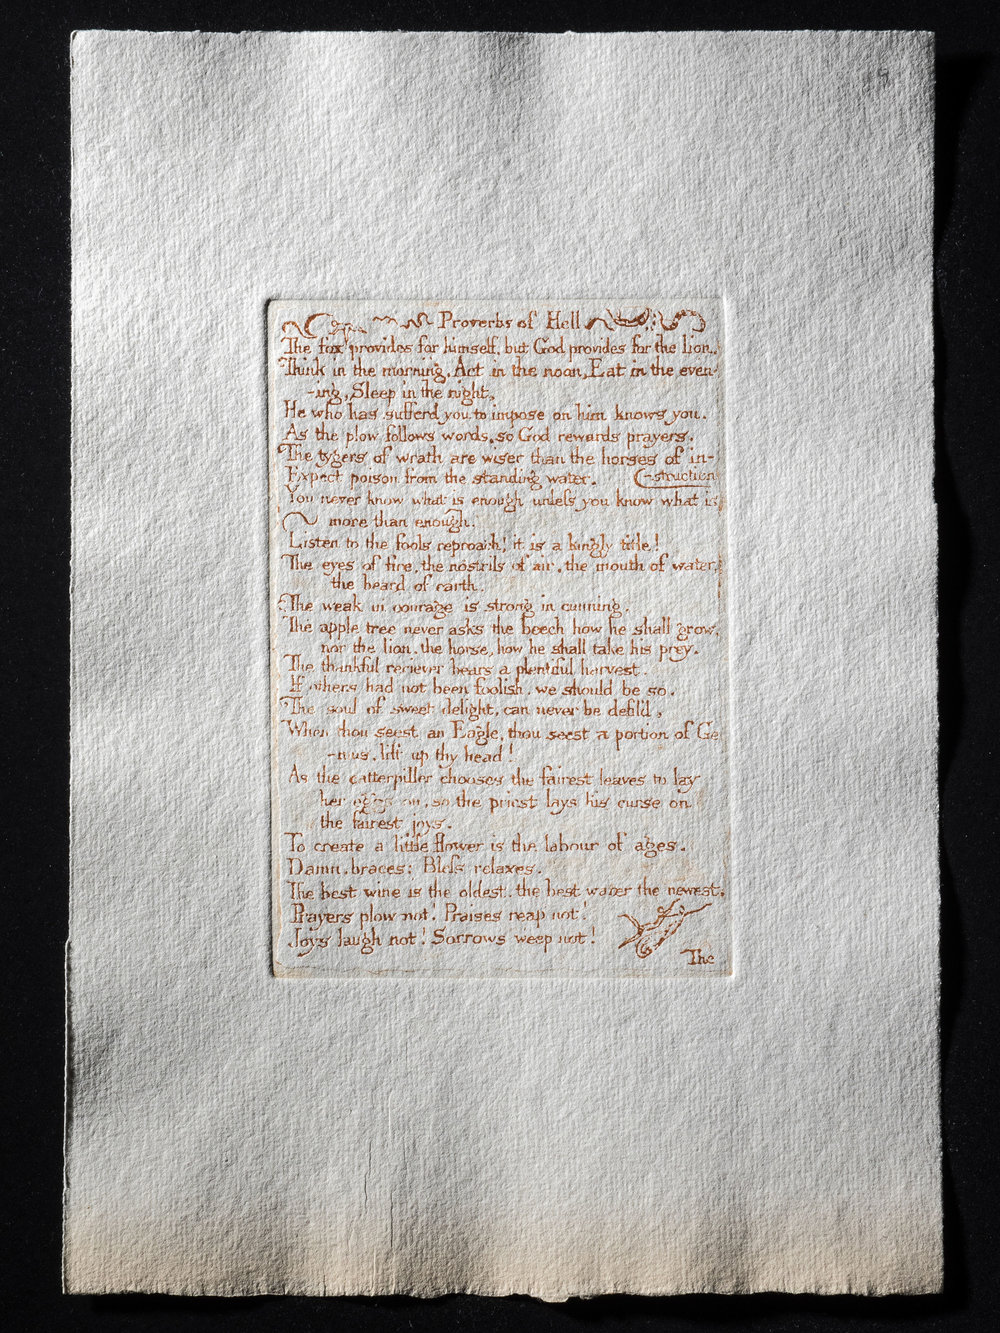 9. Proverbs of Hell, 155 x 106 mm